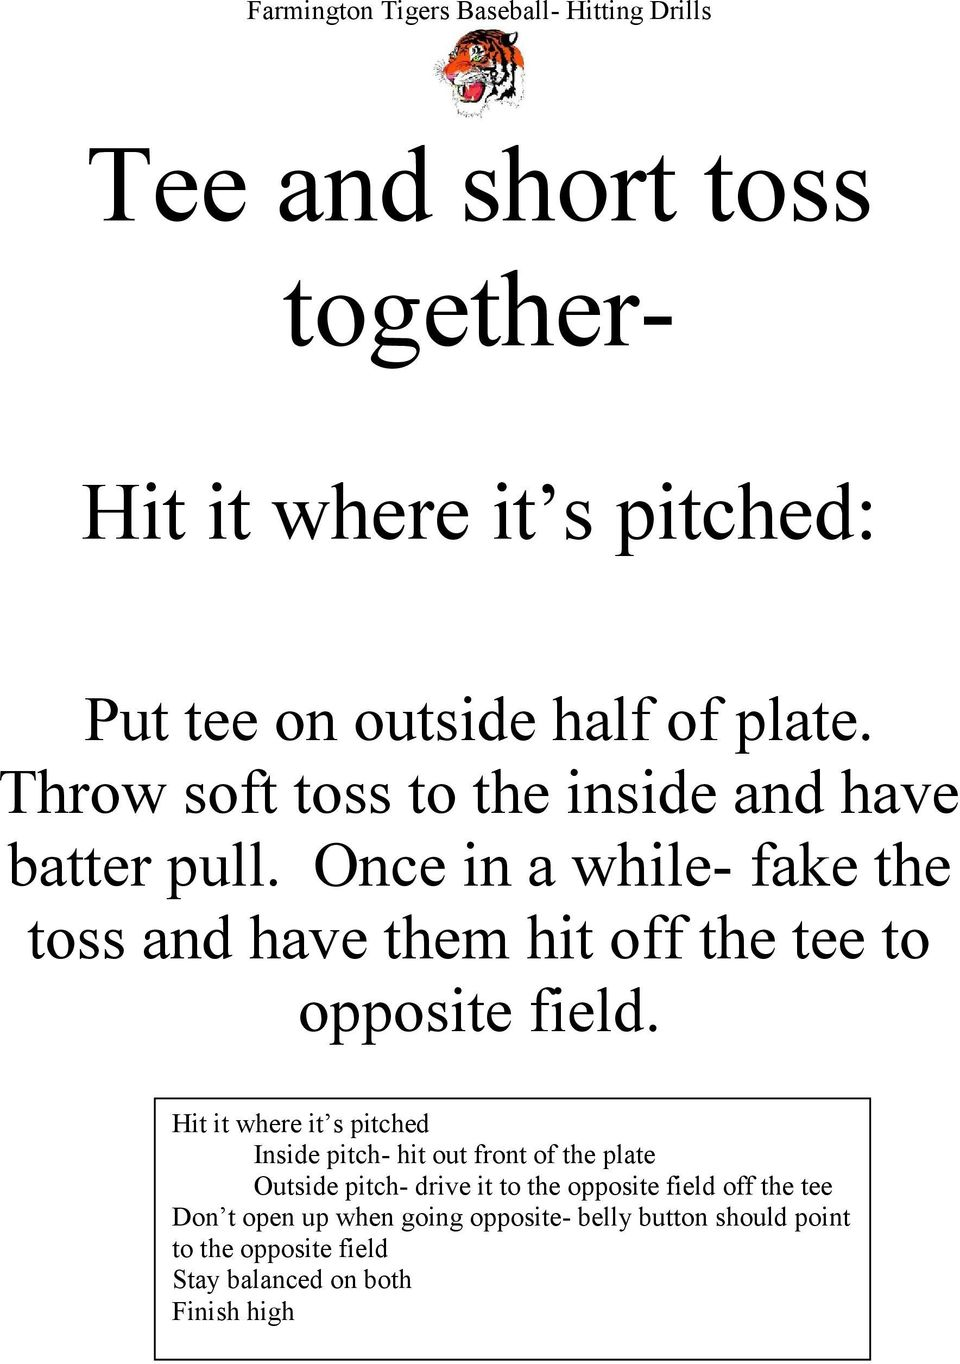 Once in a while- fake the toss and have them hit off the tee to opposite field.